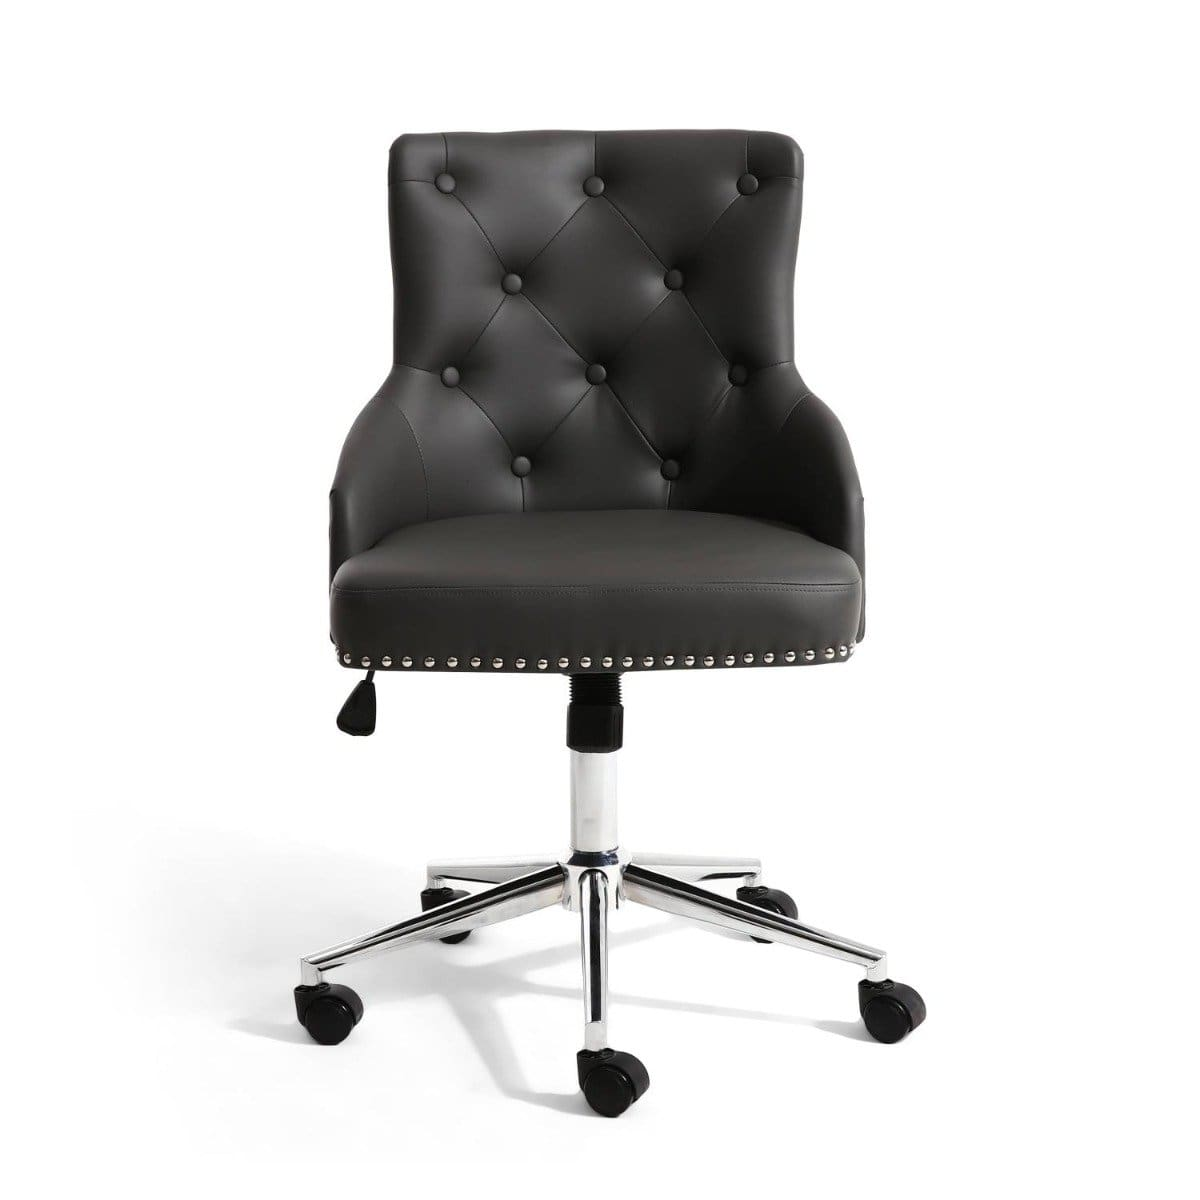 Shankar Pipe Rocco Leather Effect Graphite Grey Office Chair